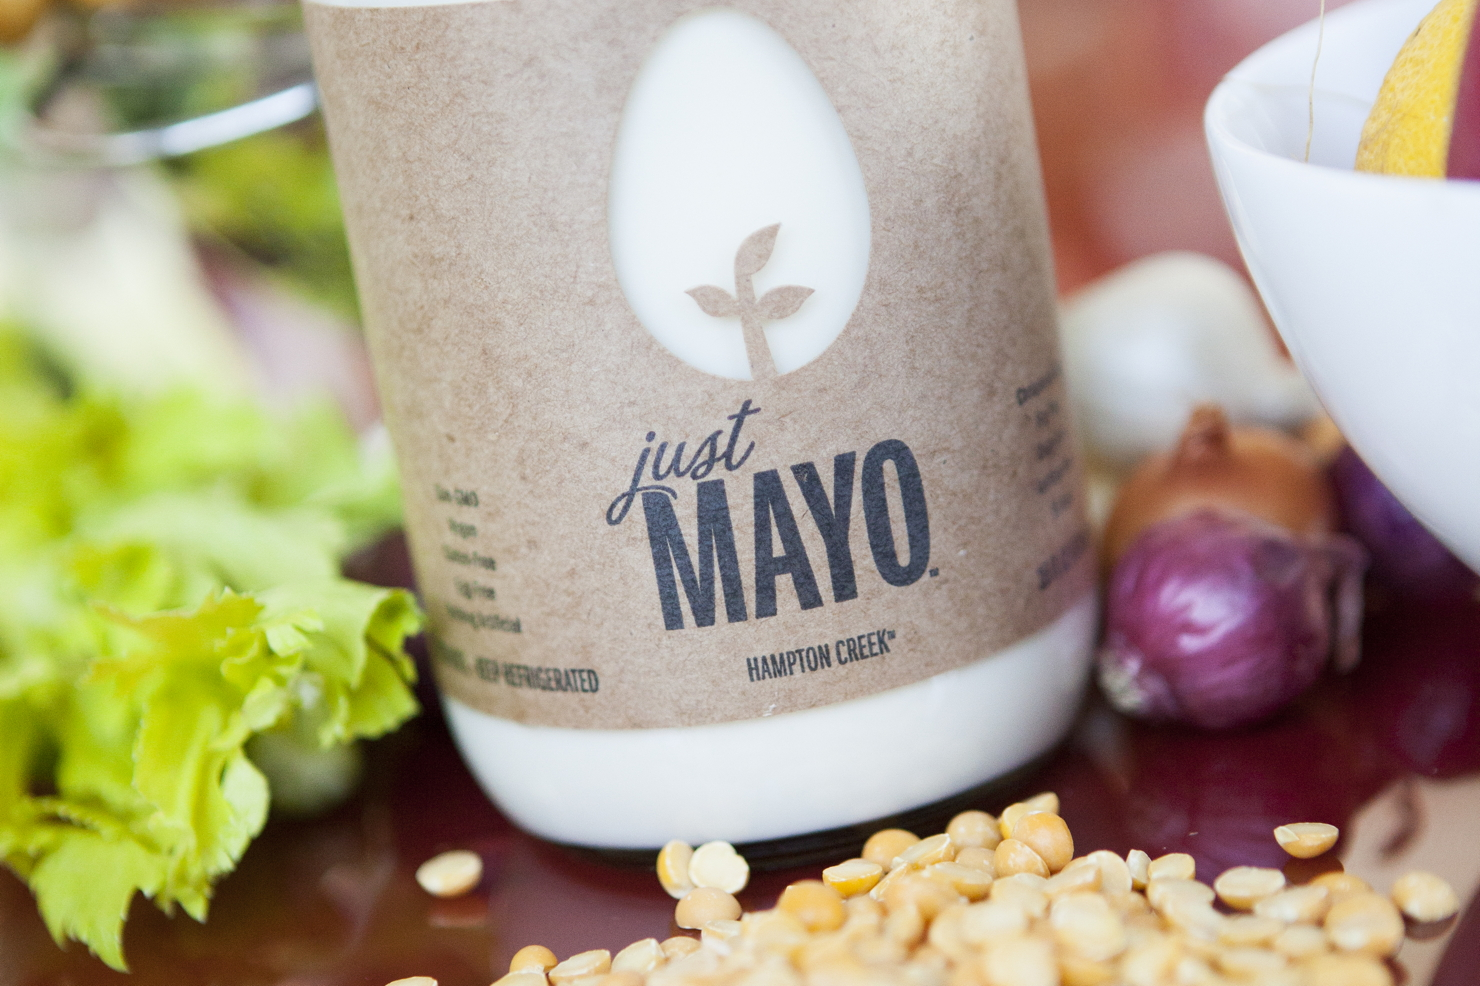 Hampton Creek Foods' Just Mayo